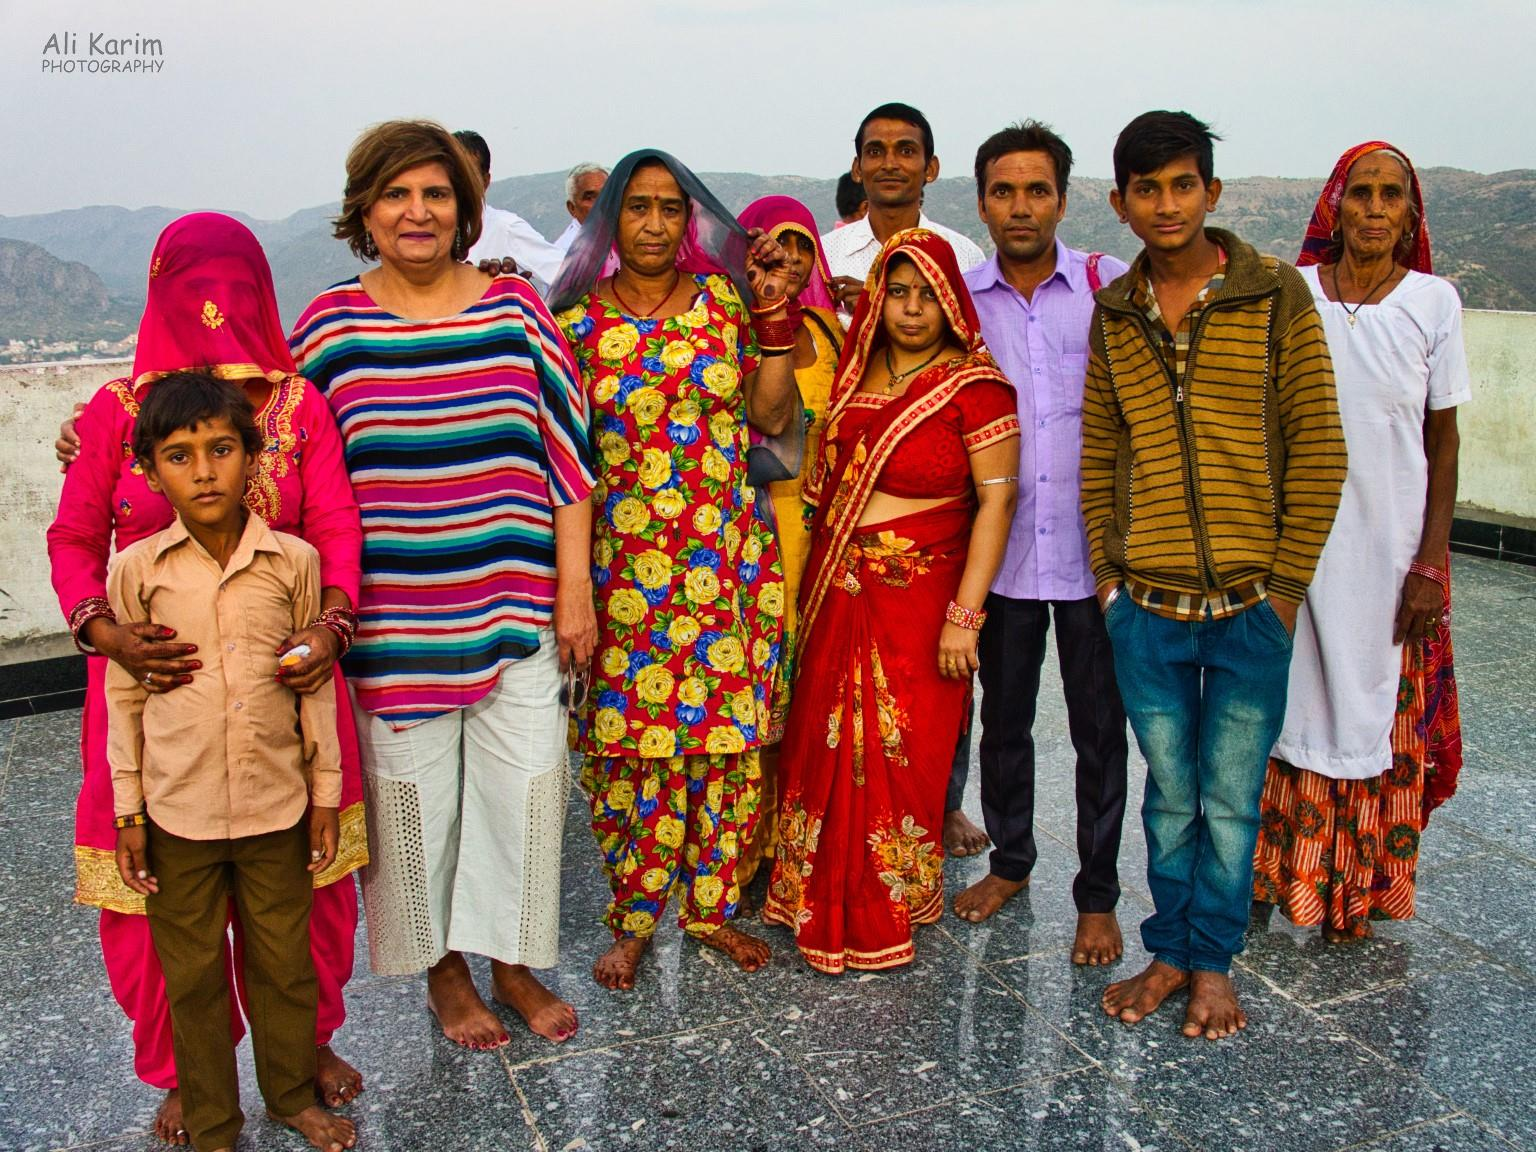 Pushkar, Rajasthan This family adopted us at the Savitri temple